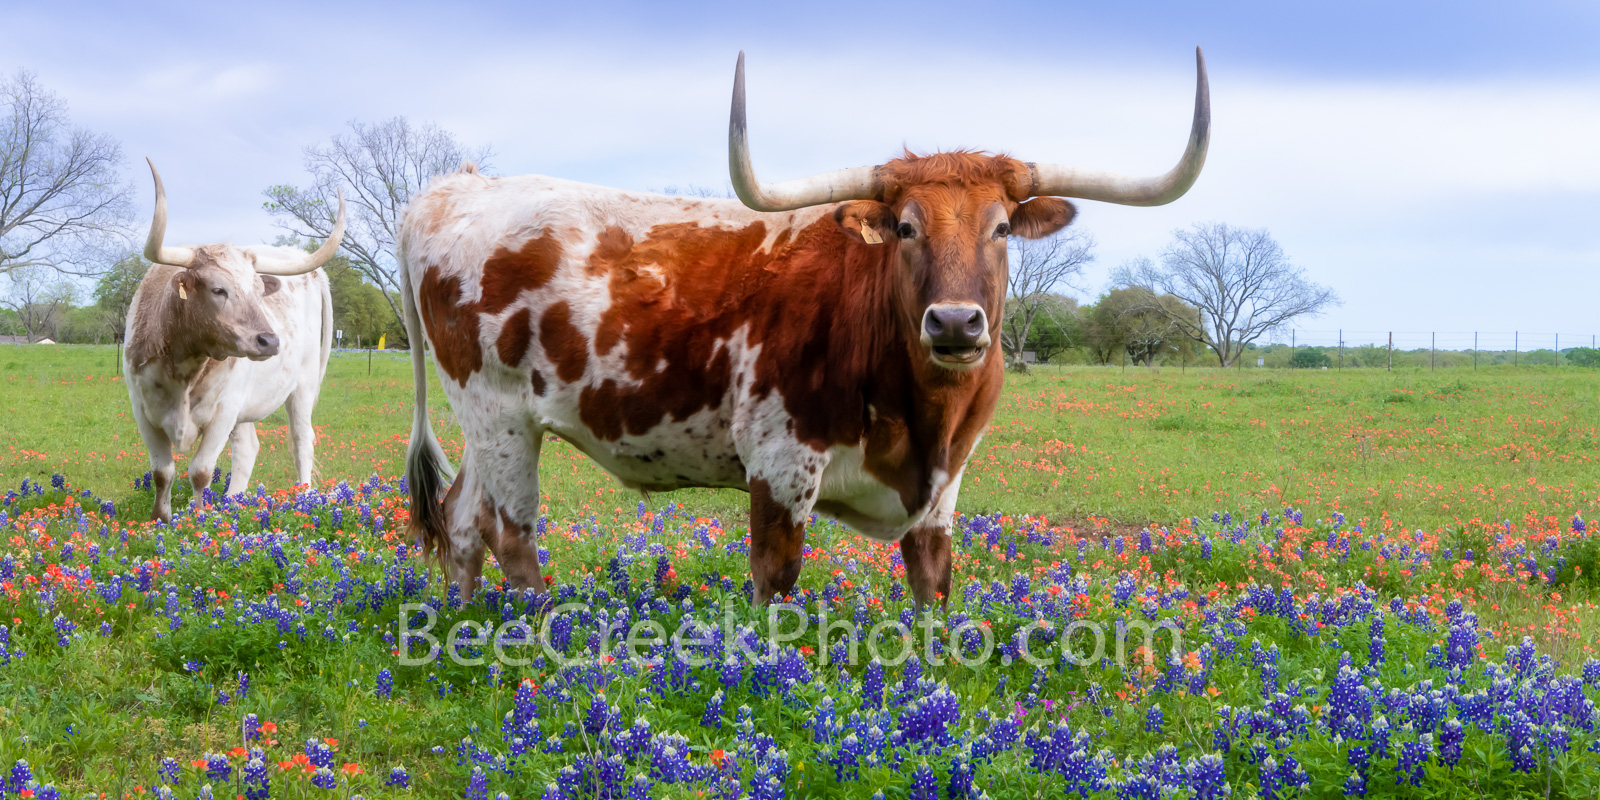 Longhorns Close Up in Wildflowers - This longhorn seem to be coming by to check us out or maybe he just wanted his close up in...